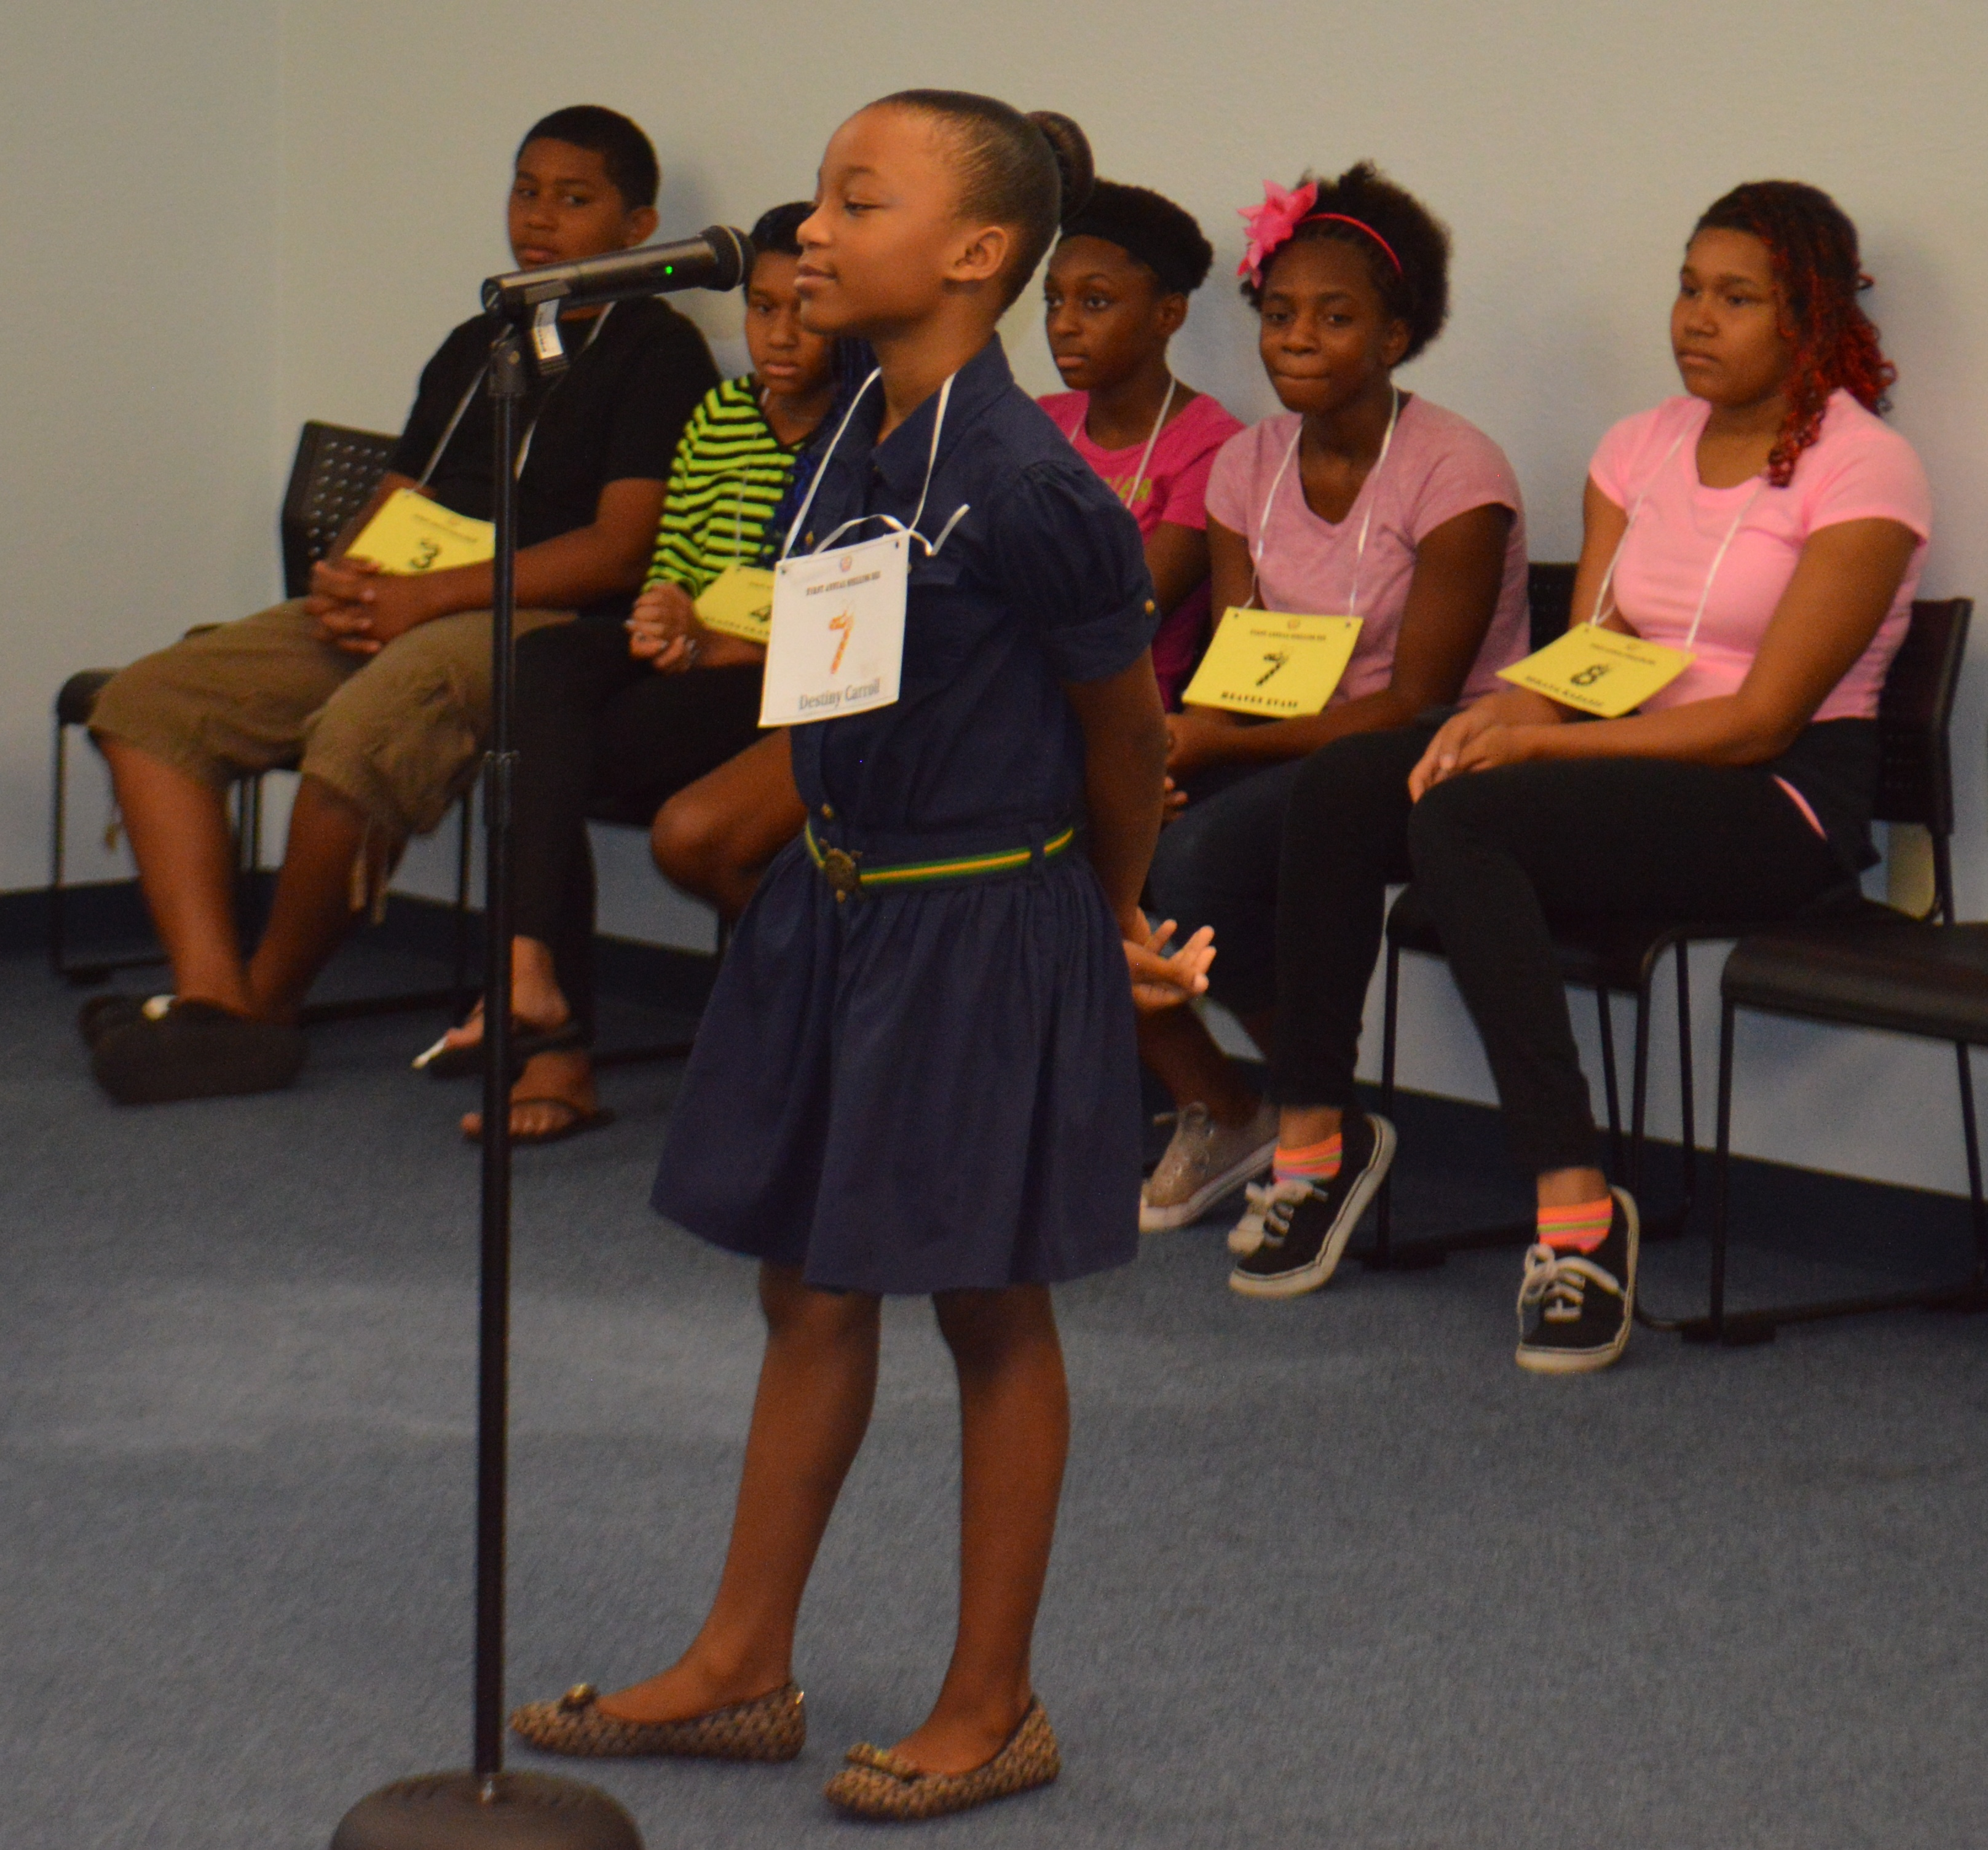 Children participating in the spelling bee